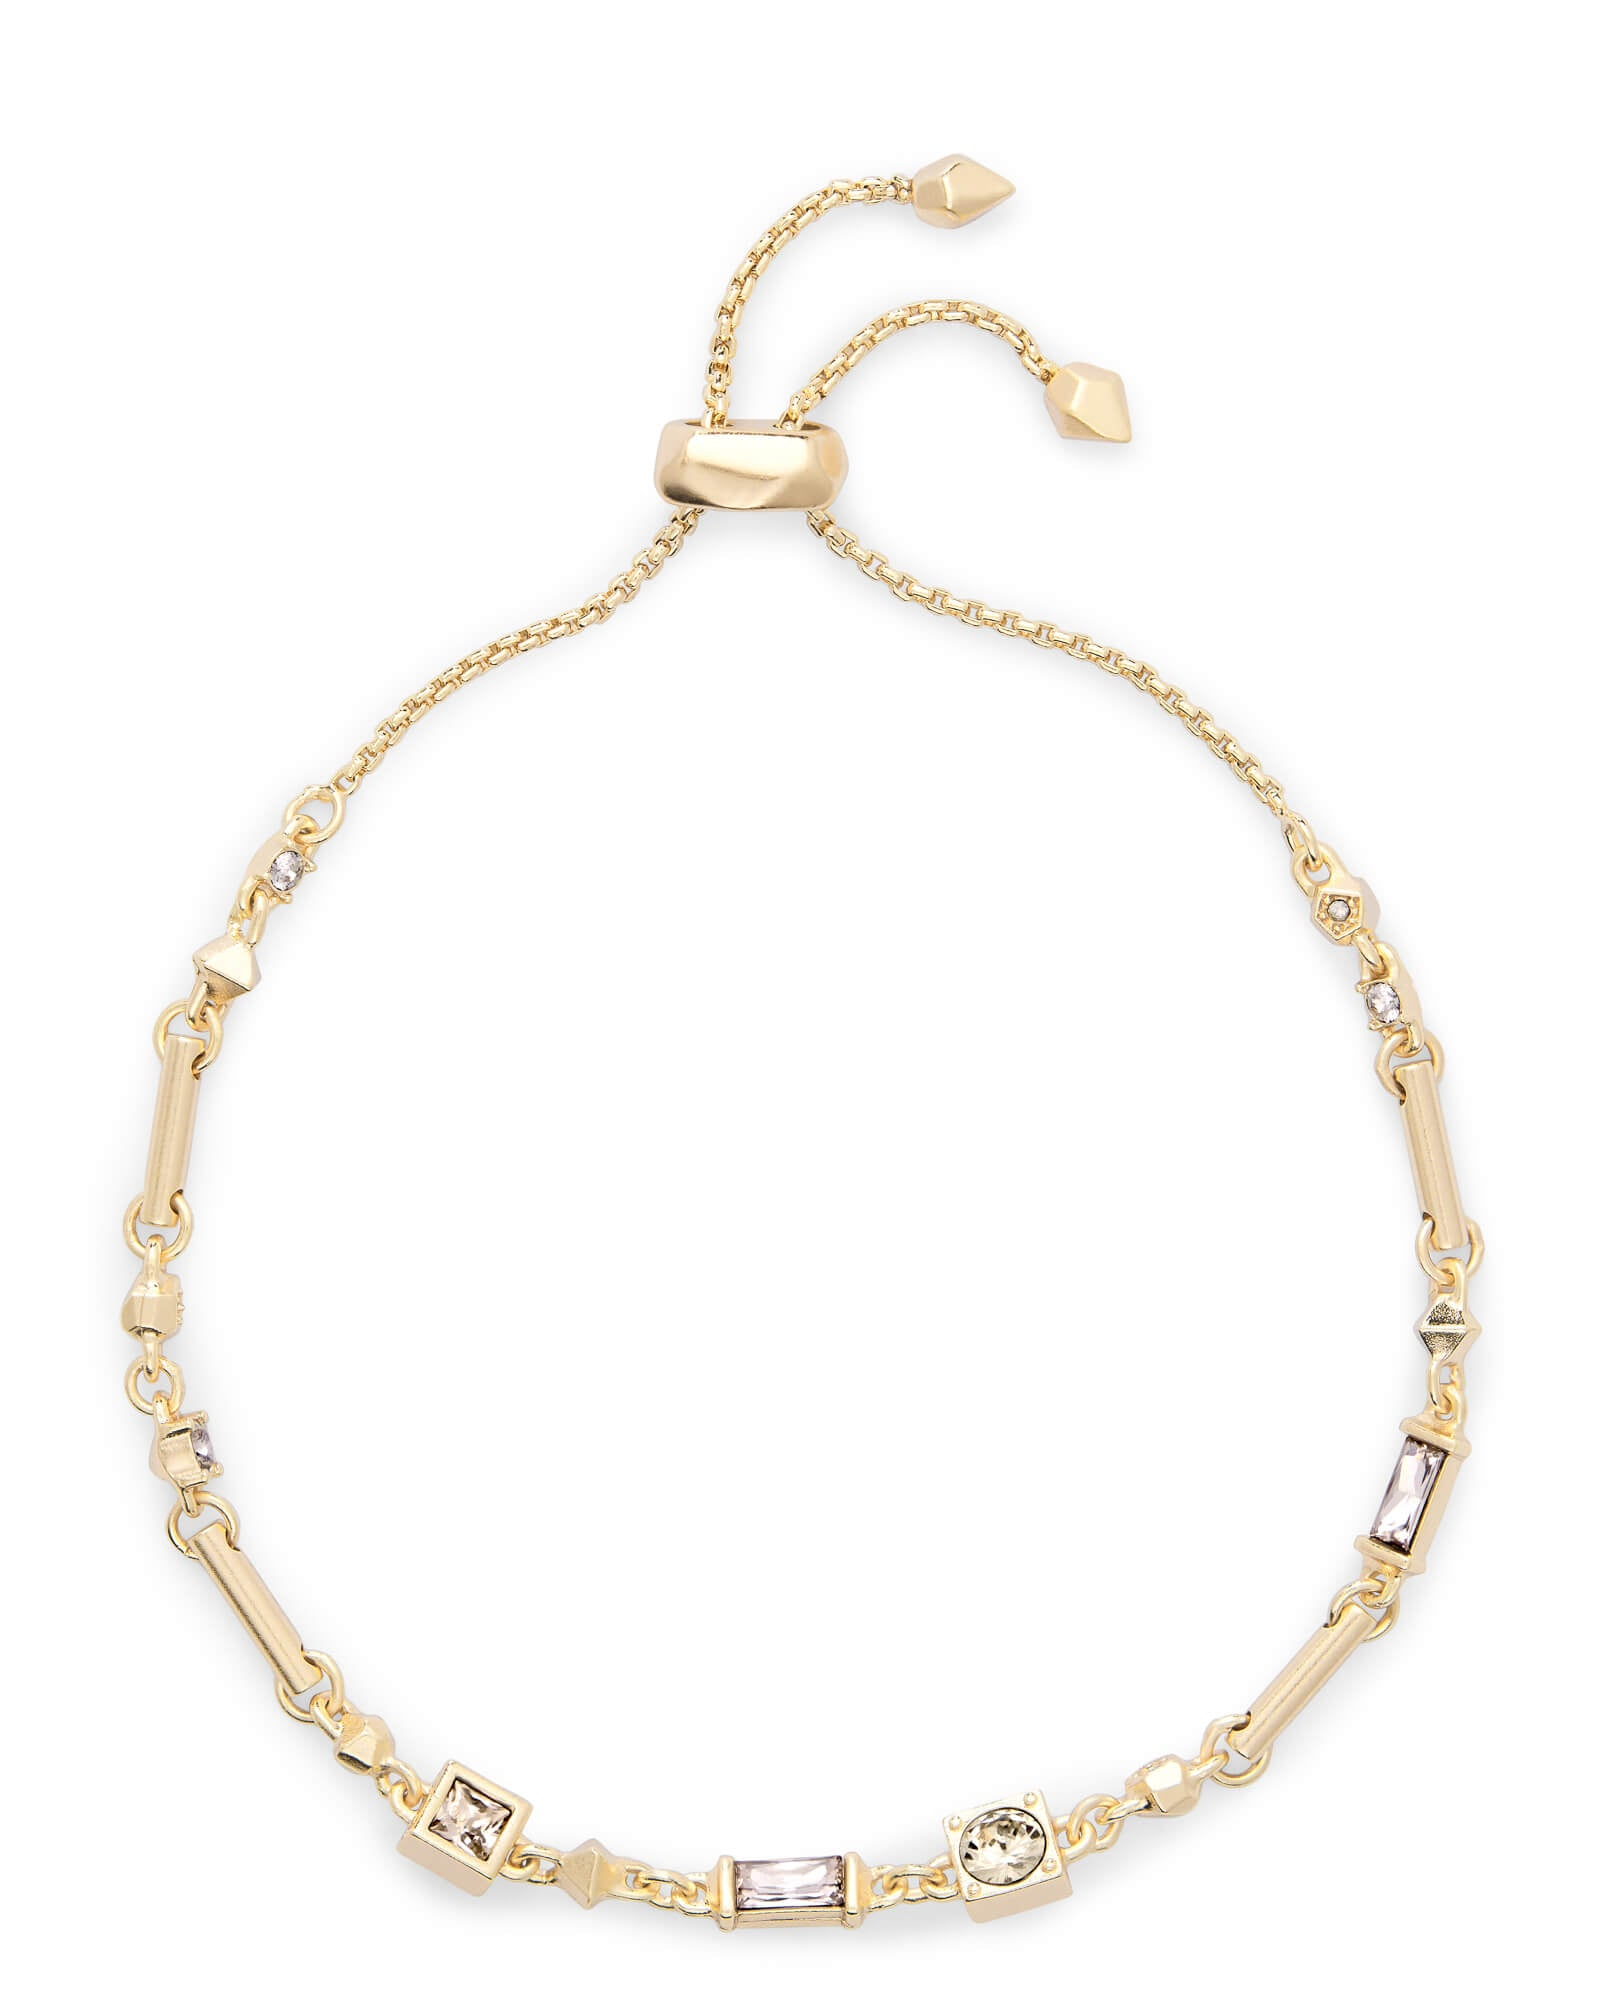 Lilo Gold Chain Bracelet in Smoky Mix